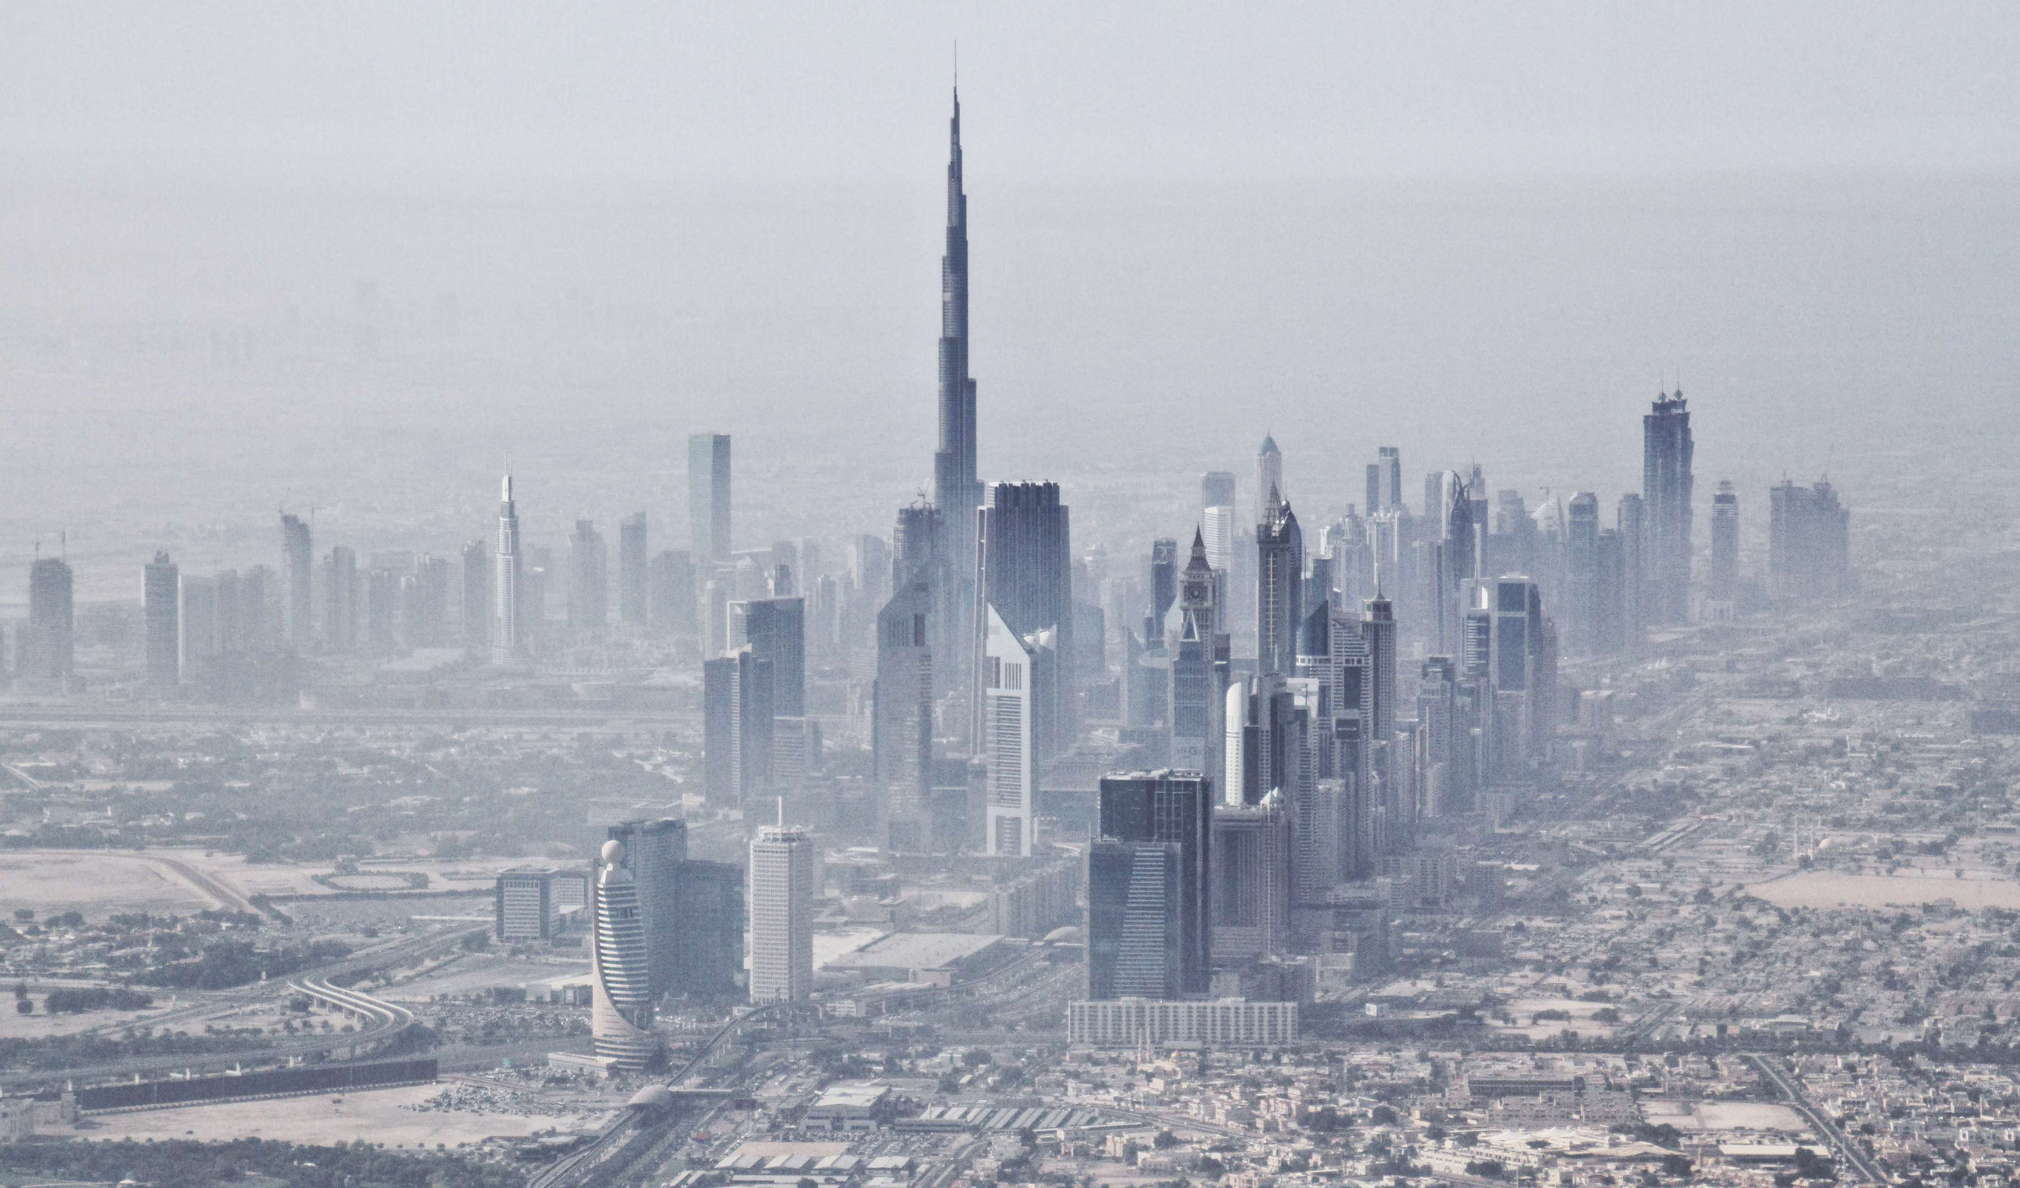 Dubai with Burj Khalifa | The world in images